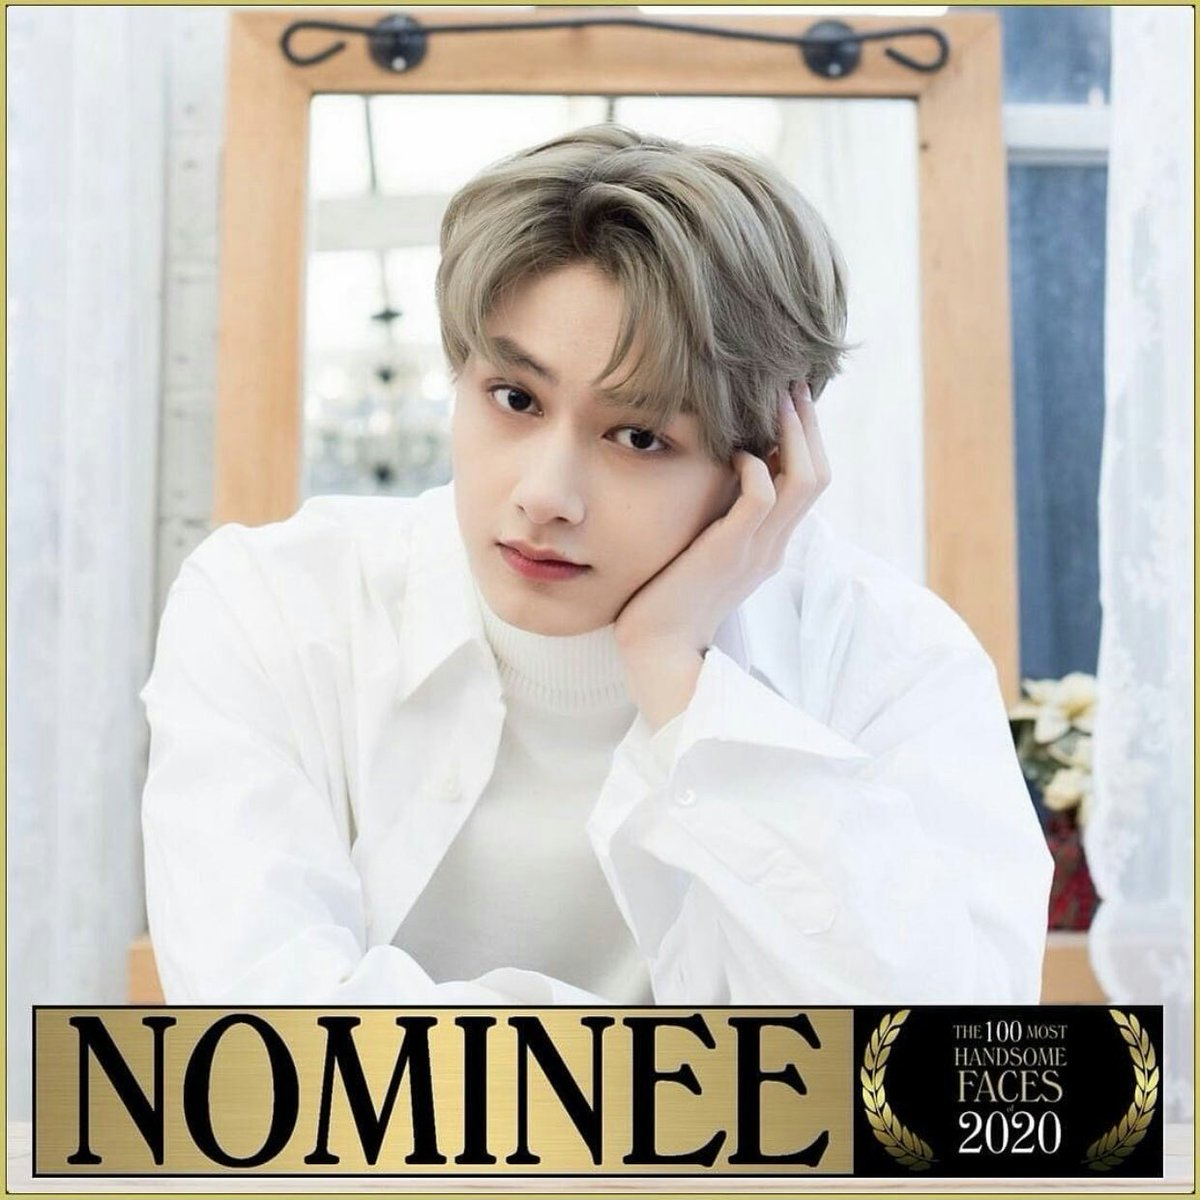 #⃝文俊辉  200924 - tccandler  JUN -- Official Nominee for The 100 Most Beautiful / The 100 Most Handsome Faces of 2020. Congratulations! #tccandler #100mostbeautiful2020 #100mosthandsome2020 #jun #wenjunhui #seventeen #china #kpop #saythename17 #singer #dancer https://t.co/BlI0QEIa2e